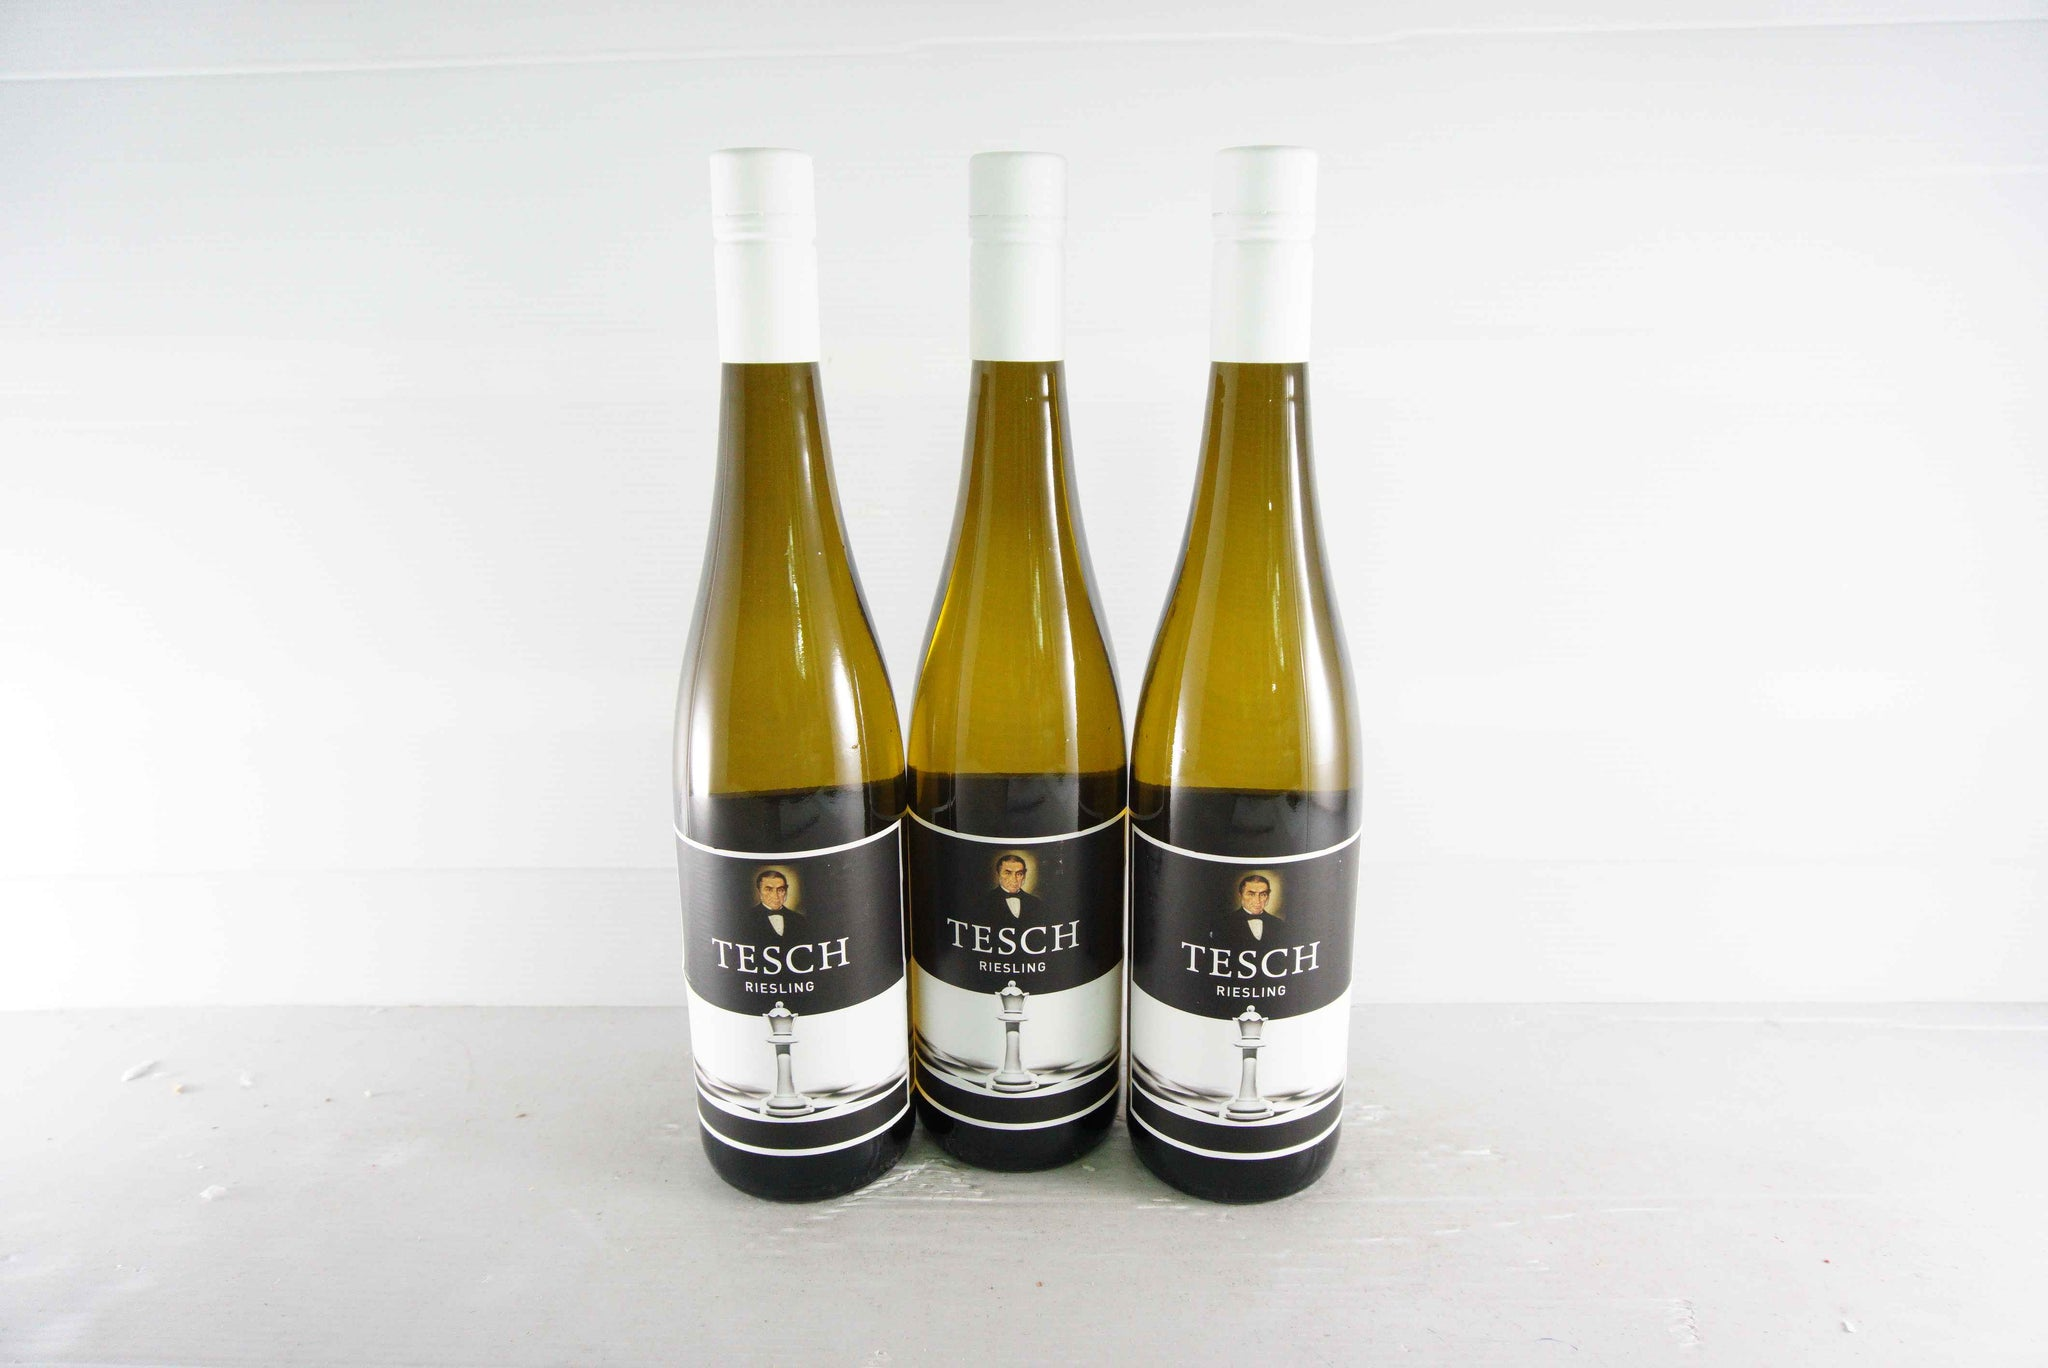 Tesch Queen of Whites Riesling 2017